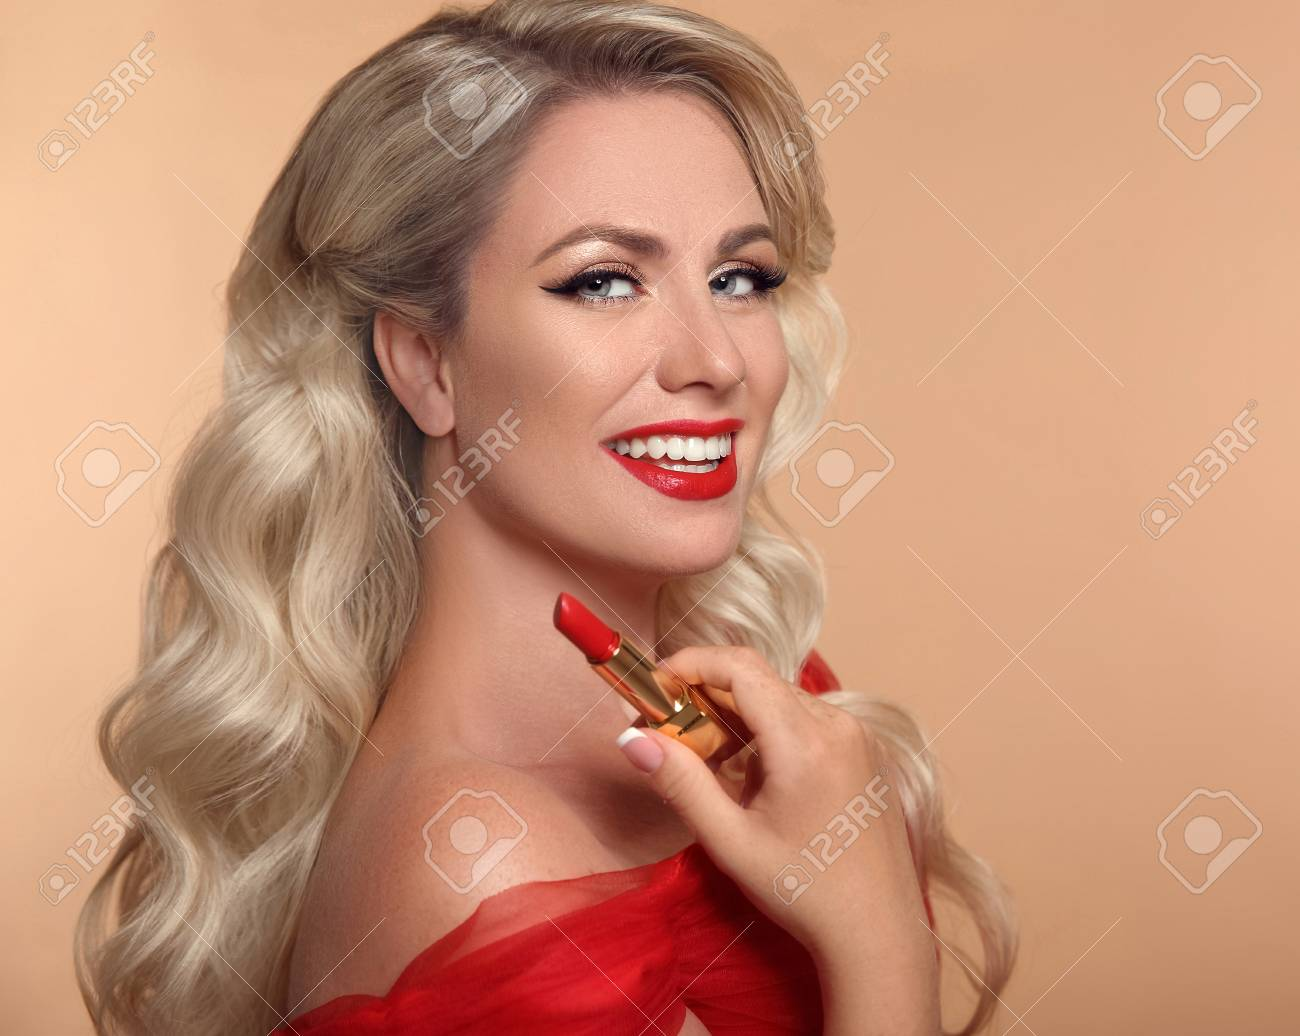 Beauty makeup. Red lips and smile. Fashion glamour portrait of pretty blonde woman with